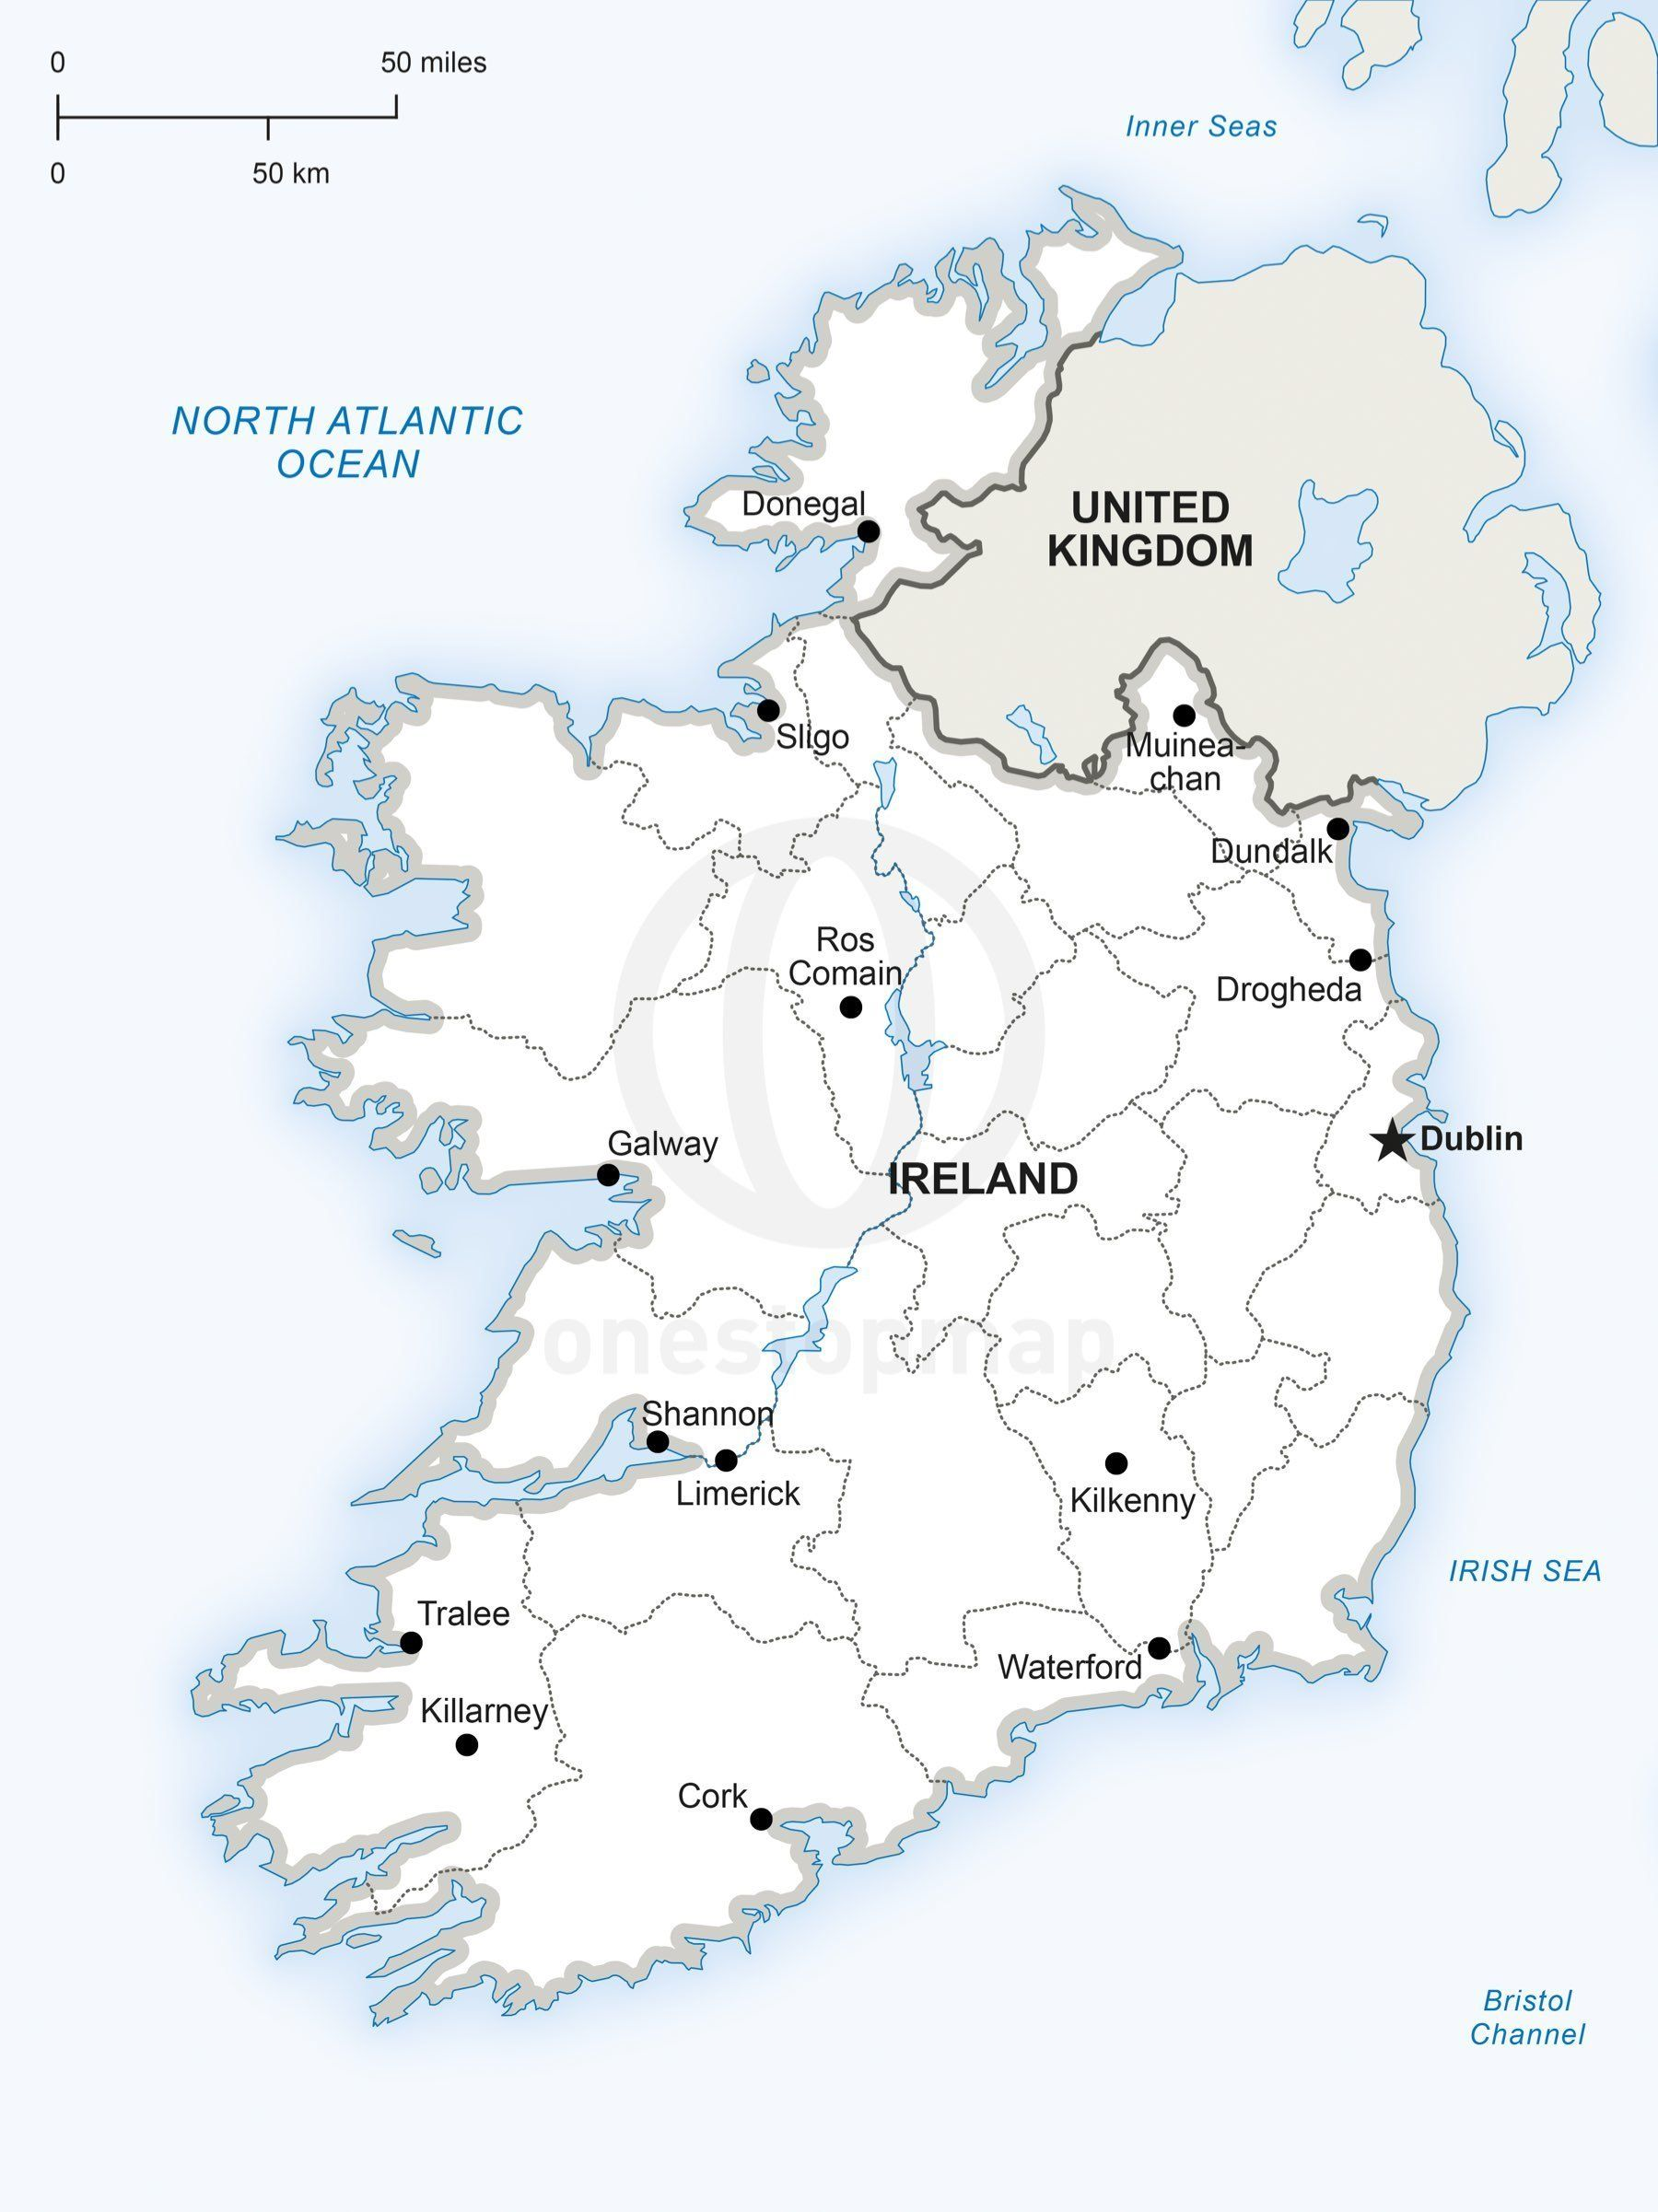 Map of Ireland political in 2019 | Map vector, Map, Ireland Map Of Ireland Galway on simple map of ireland, map of enniskillen ireland, map of glencolmcille ireland, map of north western ireland, map of liscannor ireland, map of kilkee ireland, map of rossaveal ireland, map of antrim coast ireland, map of ireland counties and cities, map of limerick ireland, map of youghal ireland, map of carrickfergus ireland, map of glenbeigh ireland, map of co. cork ireland, map of county mayo ireland, map of downpatrick ireland, map of oughterard ireland, map of kilronan ireland, map of north dublin ireland, map of glasgow ireland,